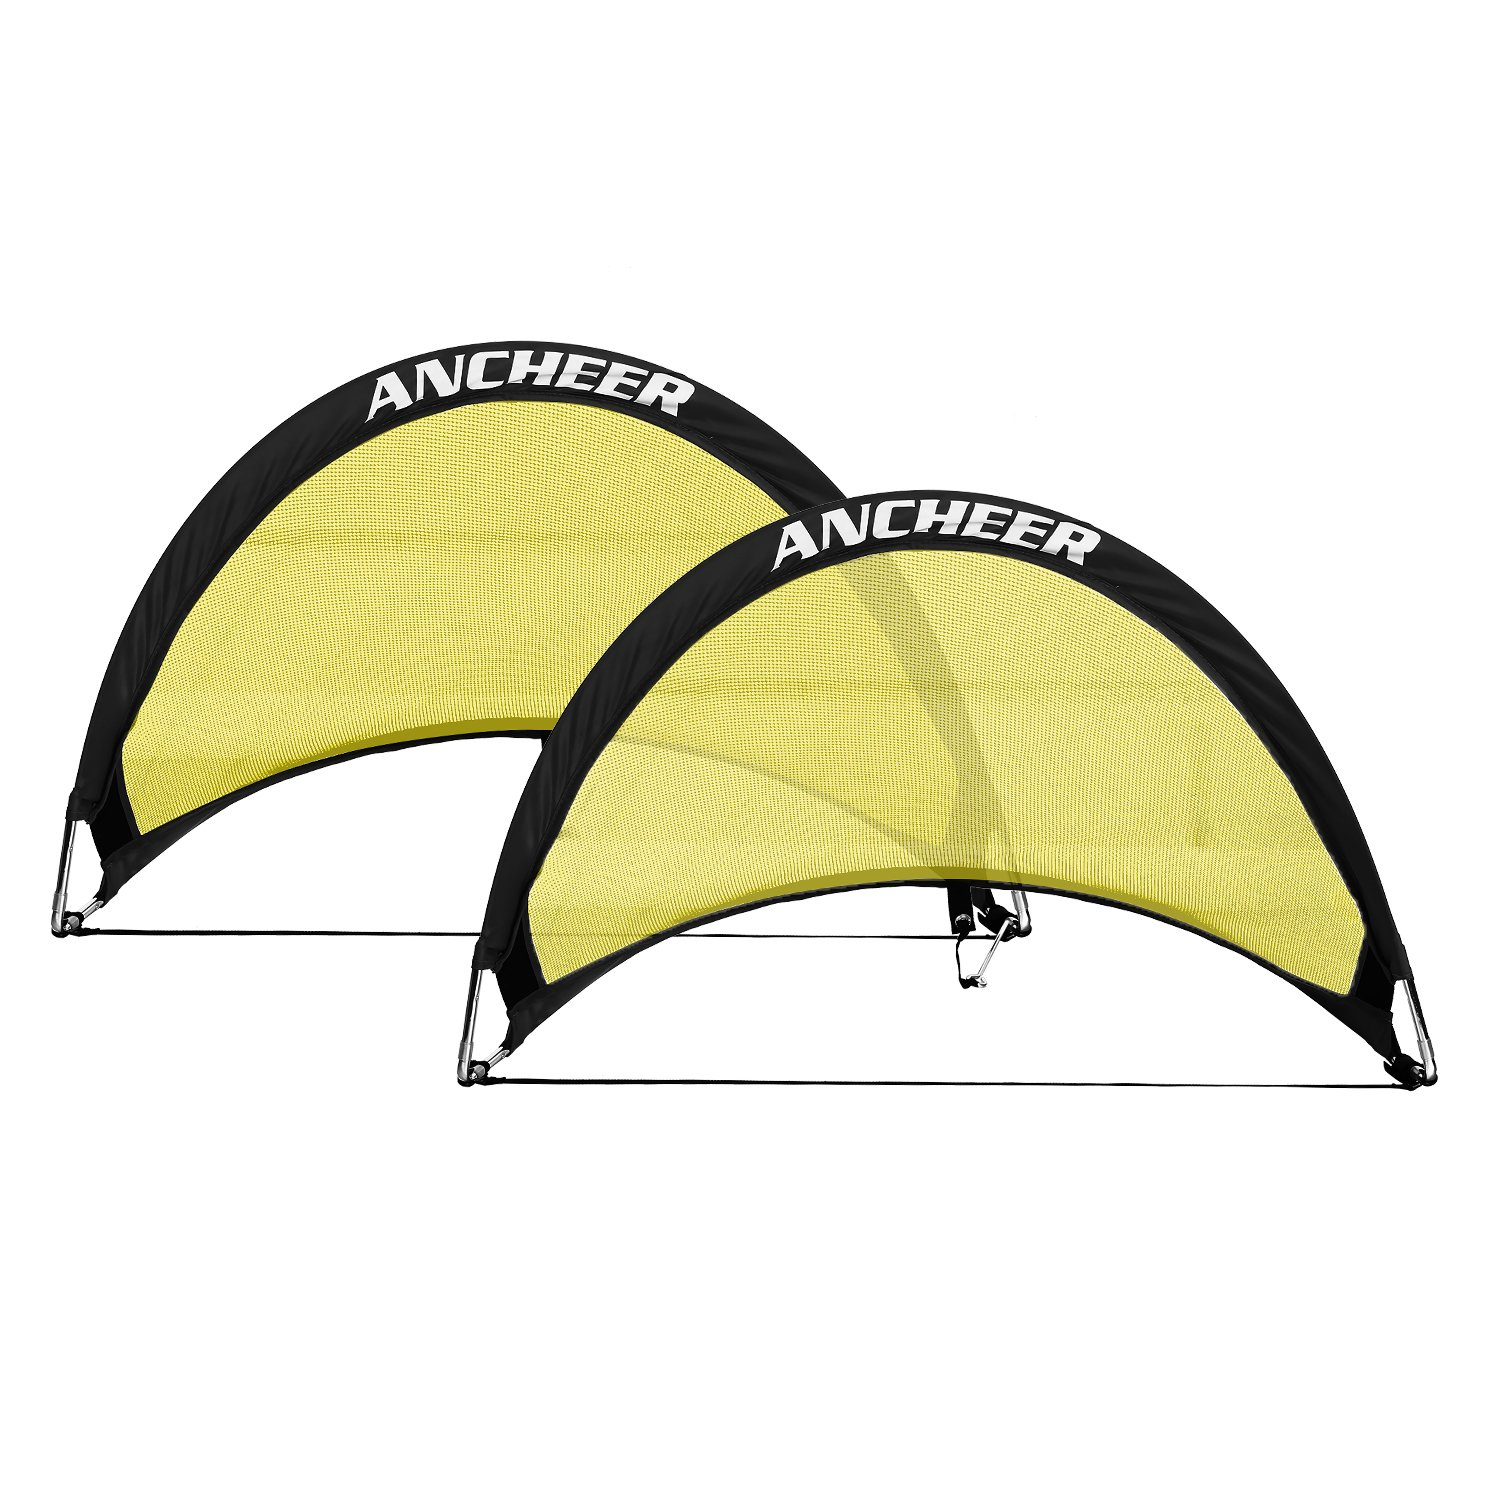 Ancheer Pop Upサッカーゴール、ポータブルサッカーネットのセット2 with Carryバッグ、で使用できる2.5 Ft、4 ft、6 ft イエロー B073LV5XYV